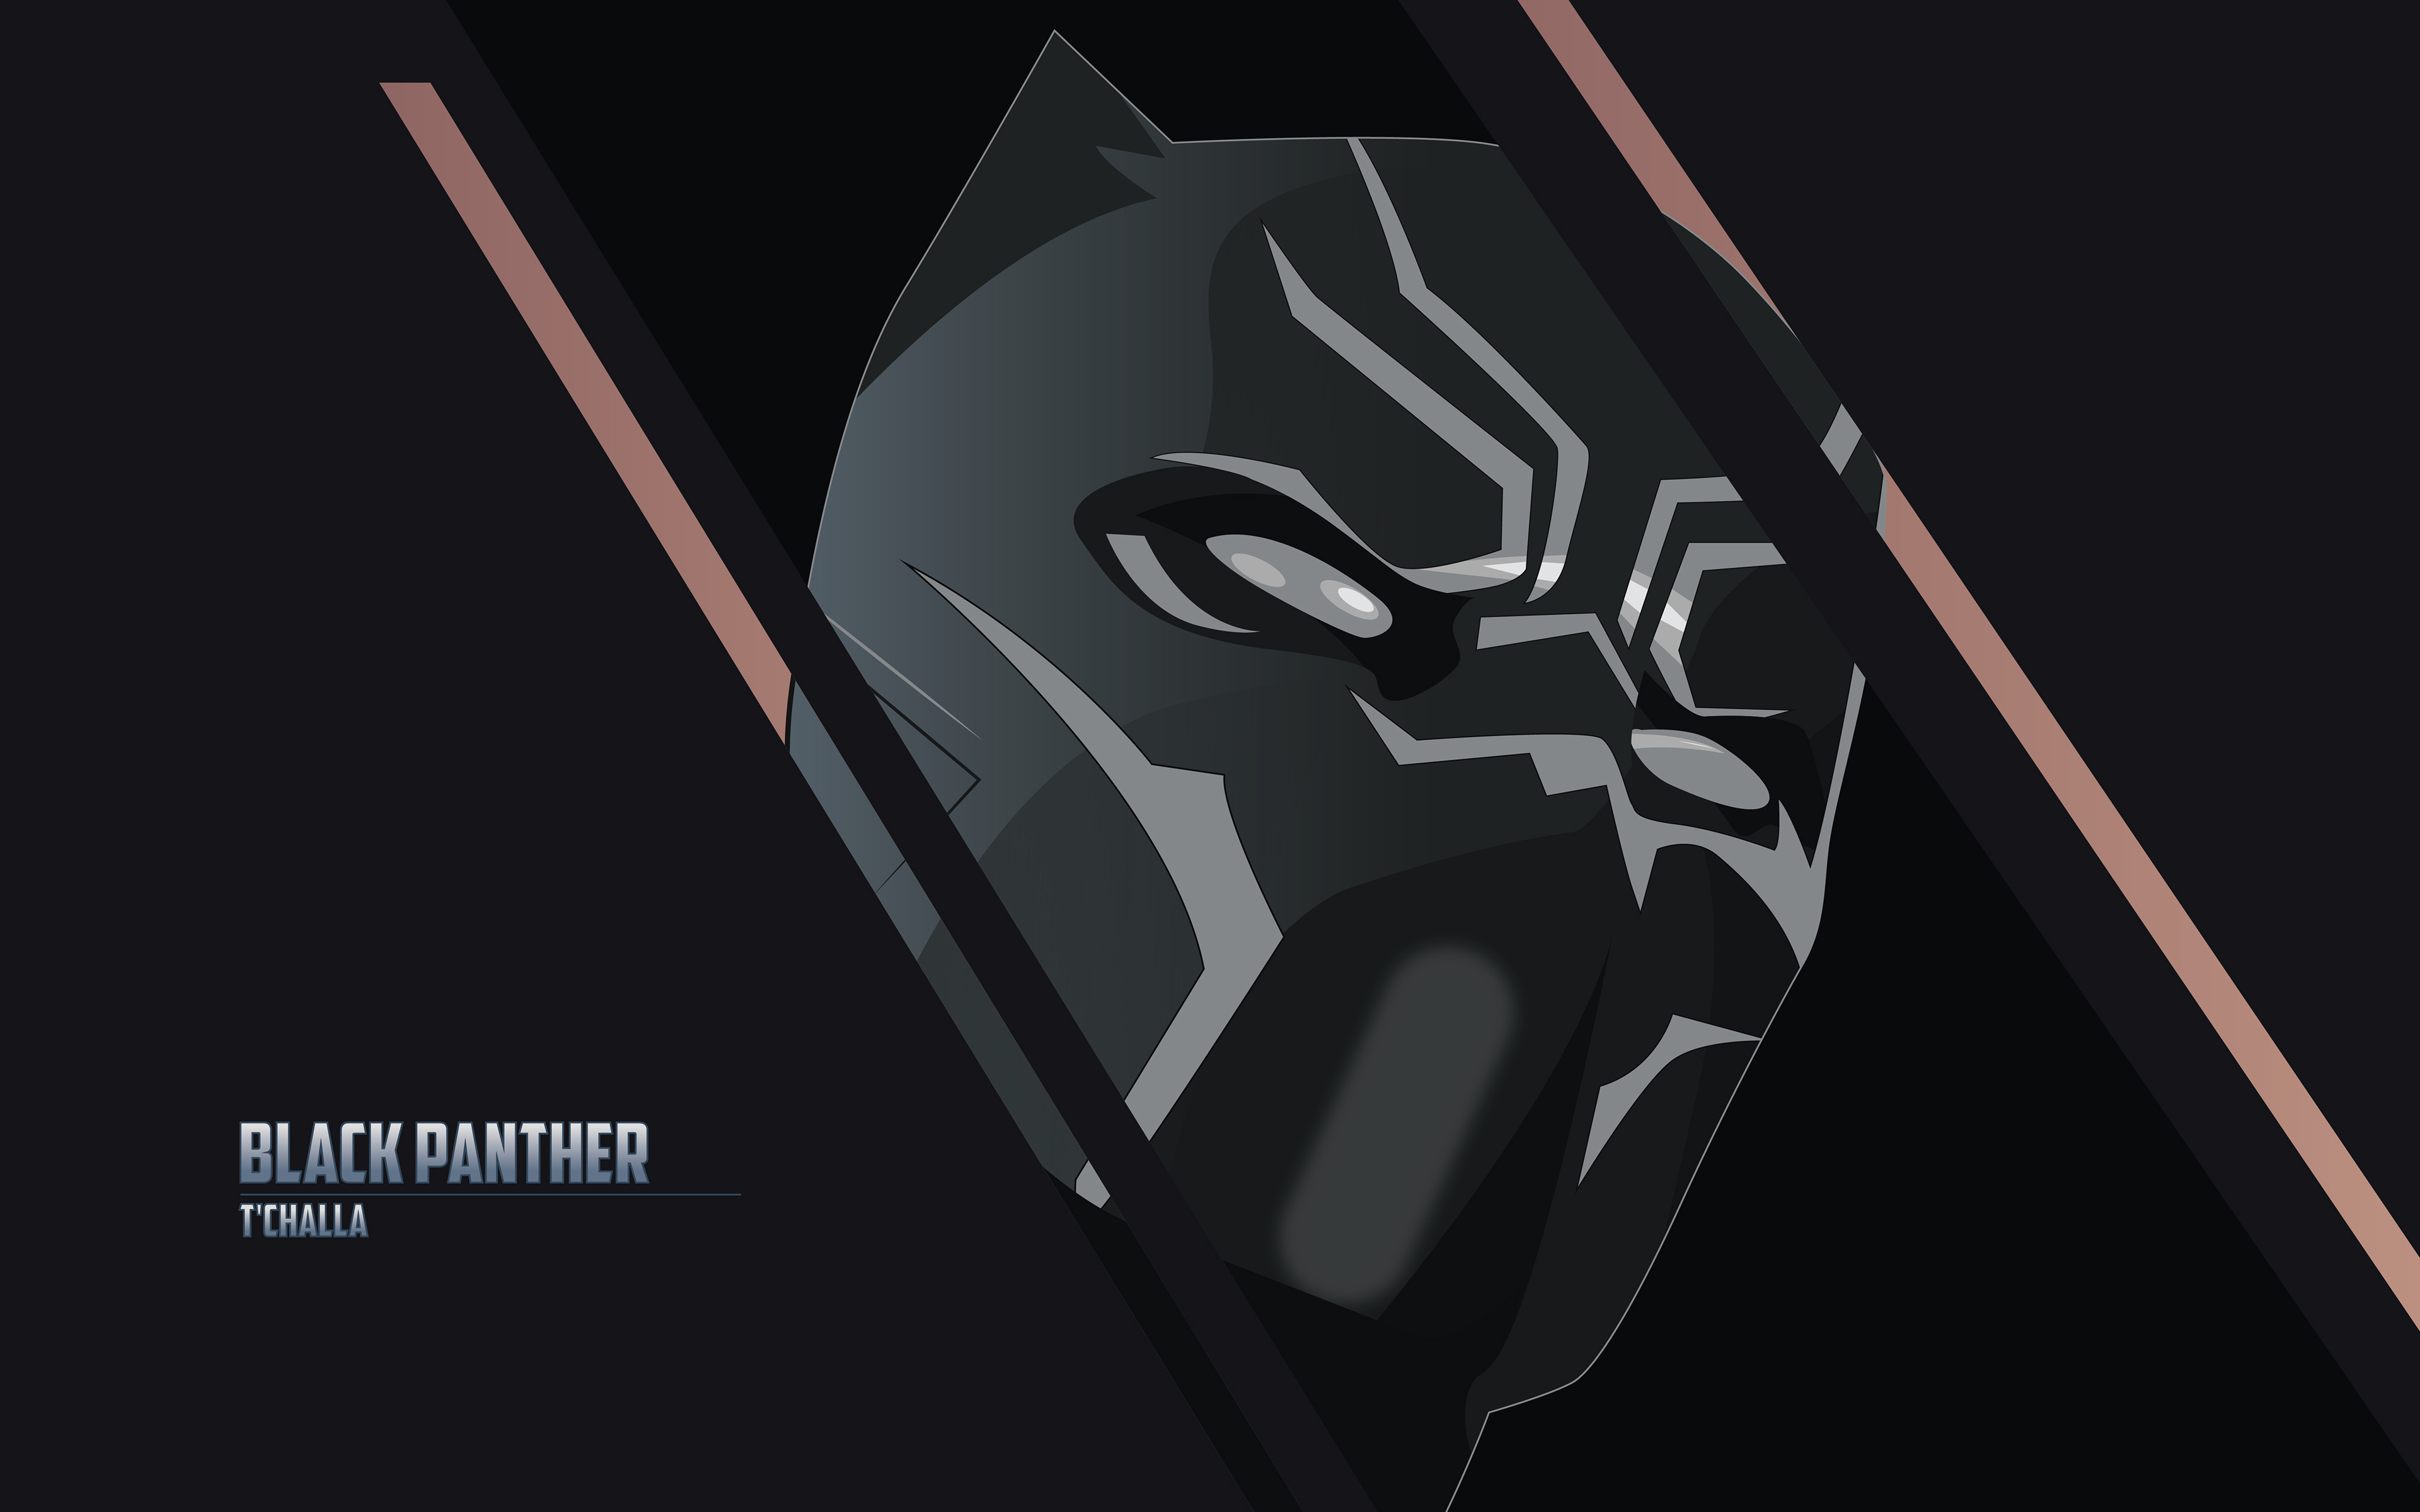 T Challa The Black Panther 4k Wallpapers Hd Wallpapers